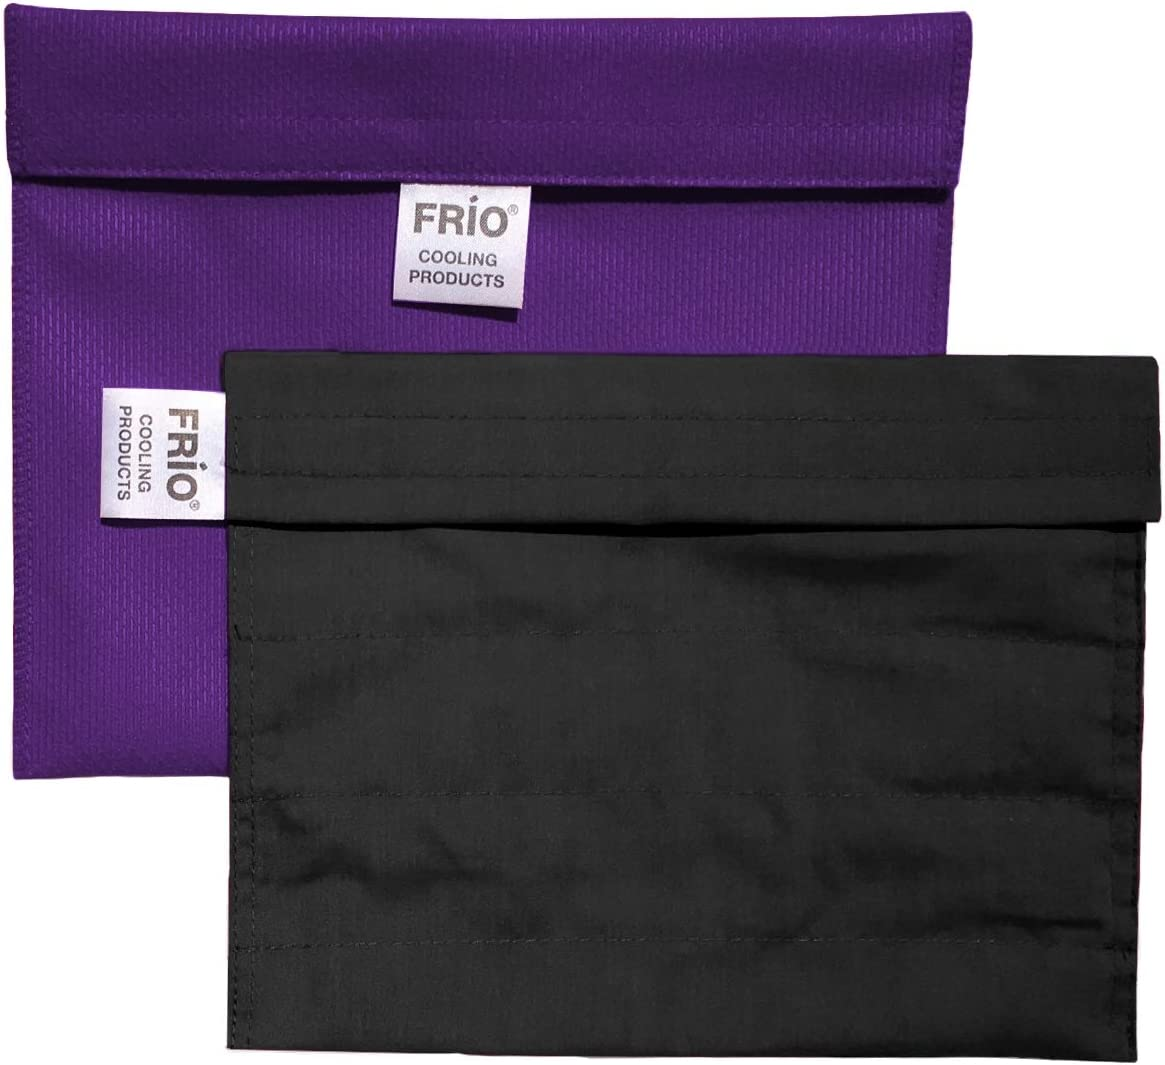 All items free shipping FRIO Cooling Wallet-Extra New product type Large - Wit Keep Purple Cool Insulin